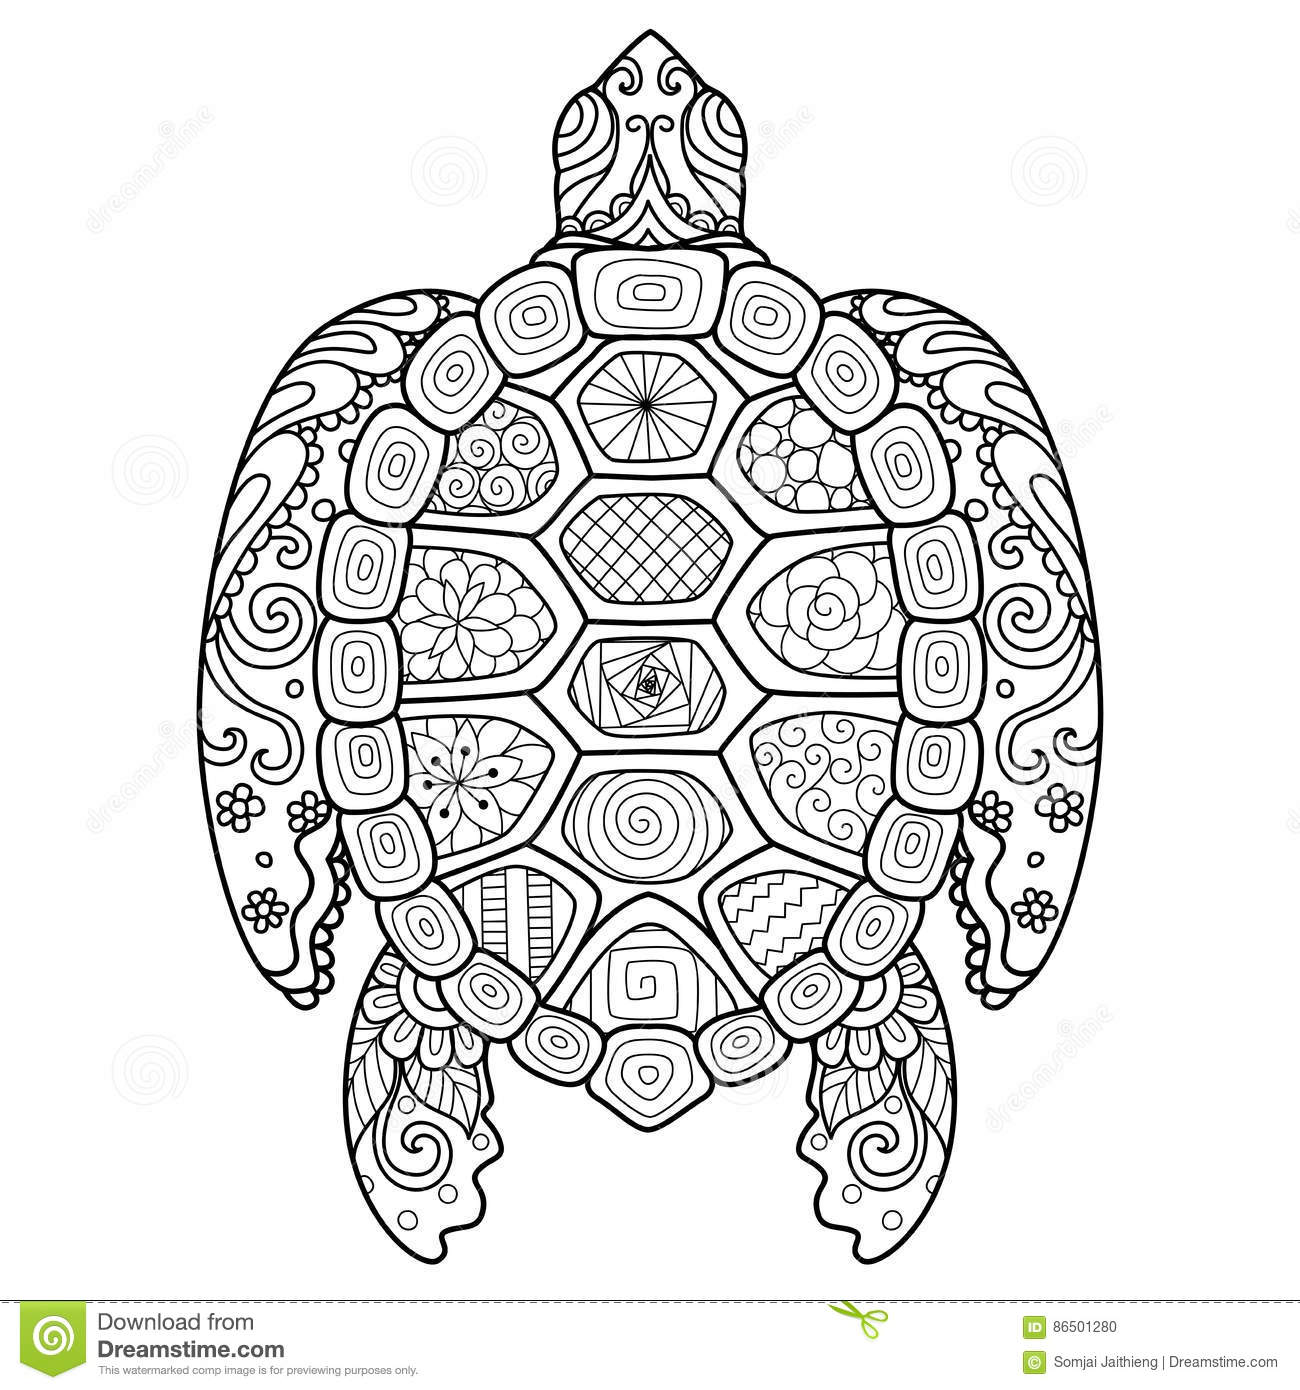 Shirt design book - Zendoodle Stylized Of Beautiful Turtle For Tattoo T Shirt Design And Coloring Book For